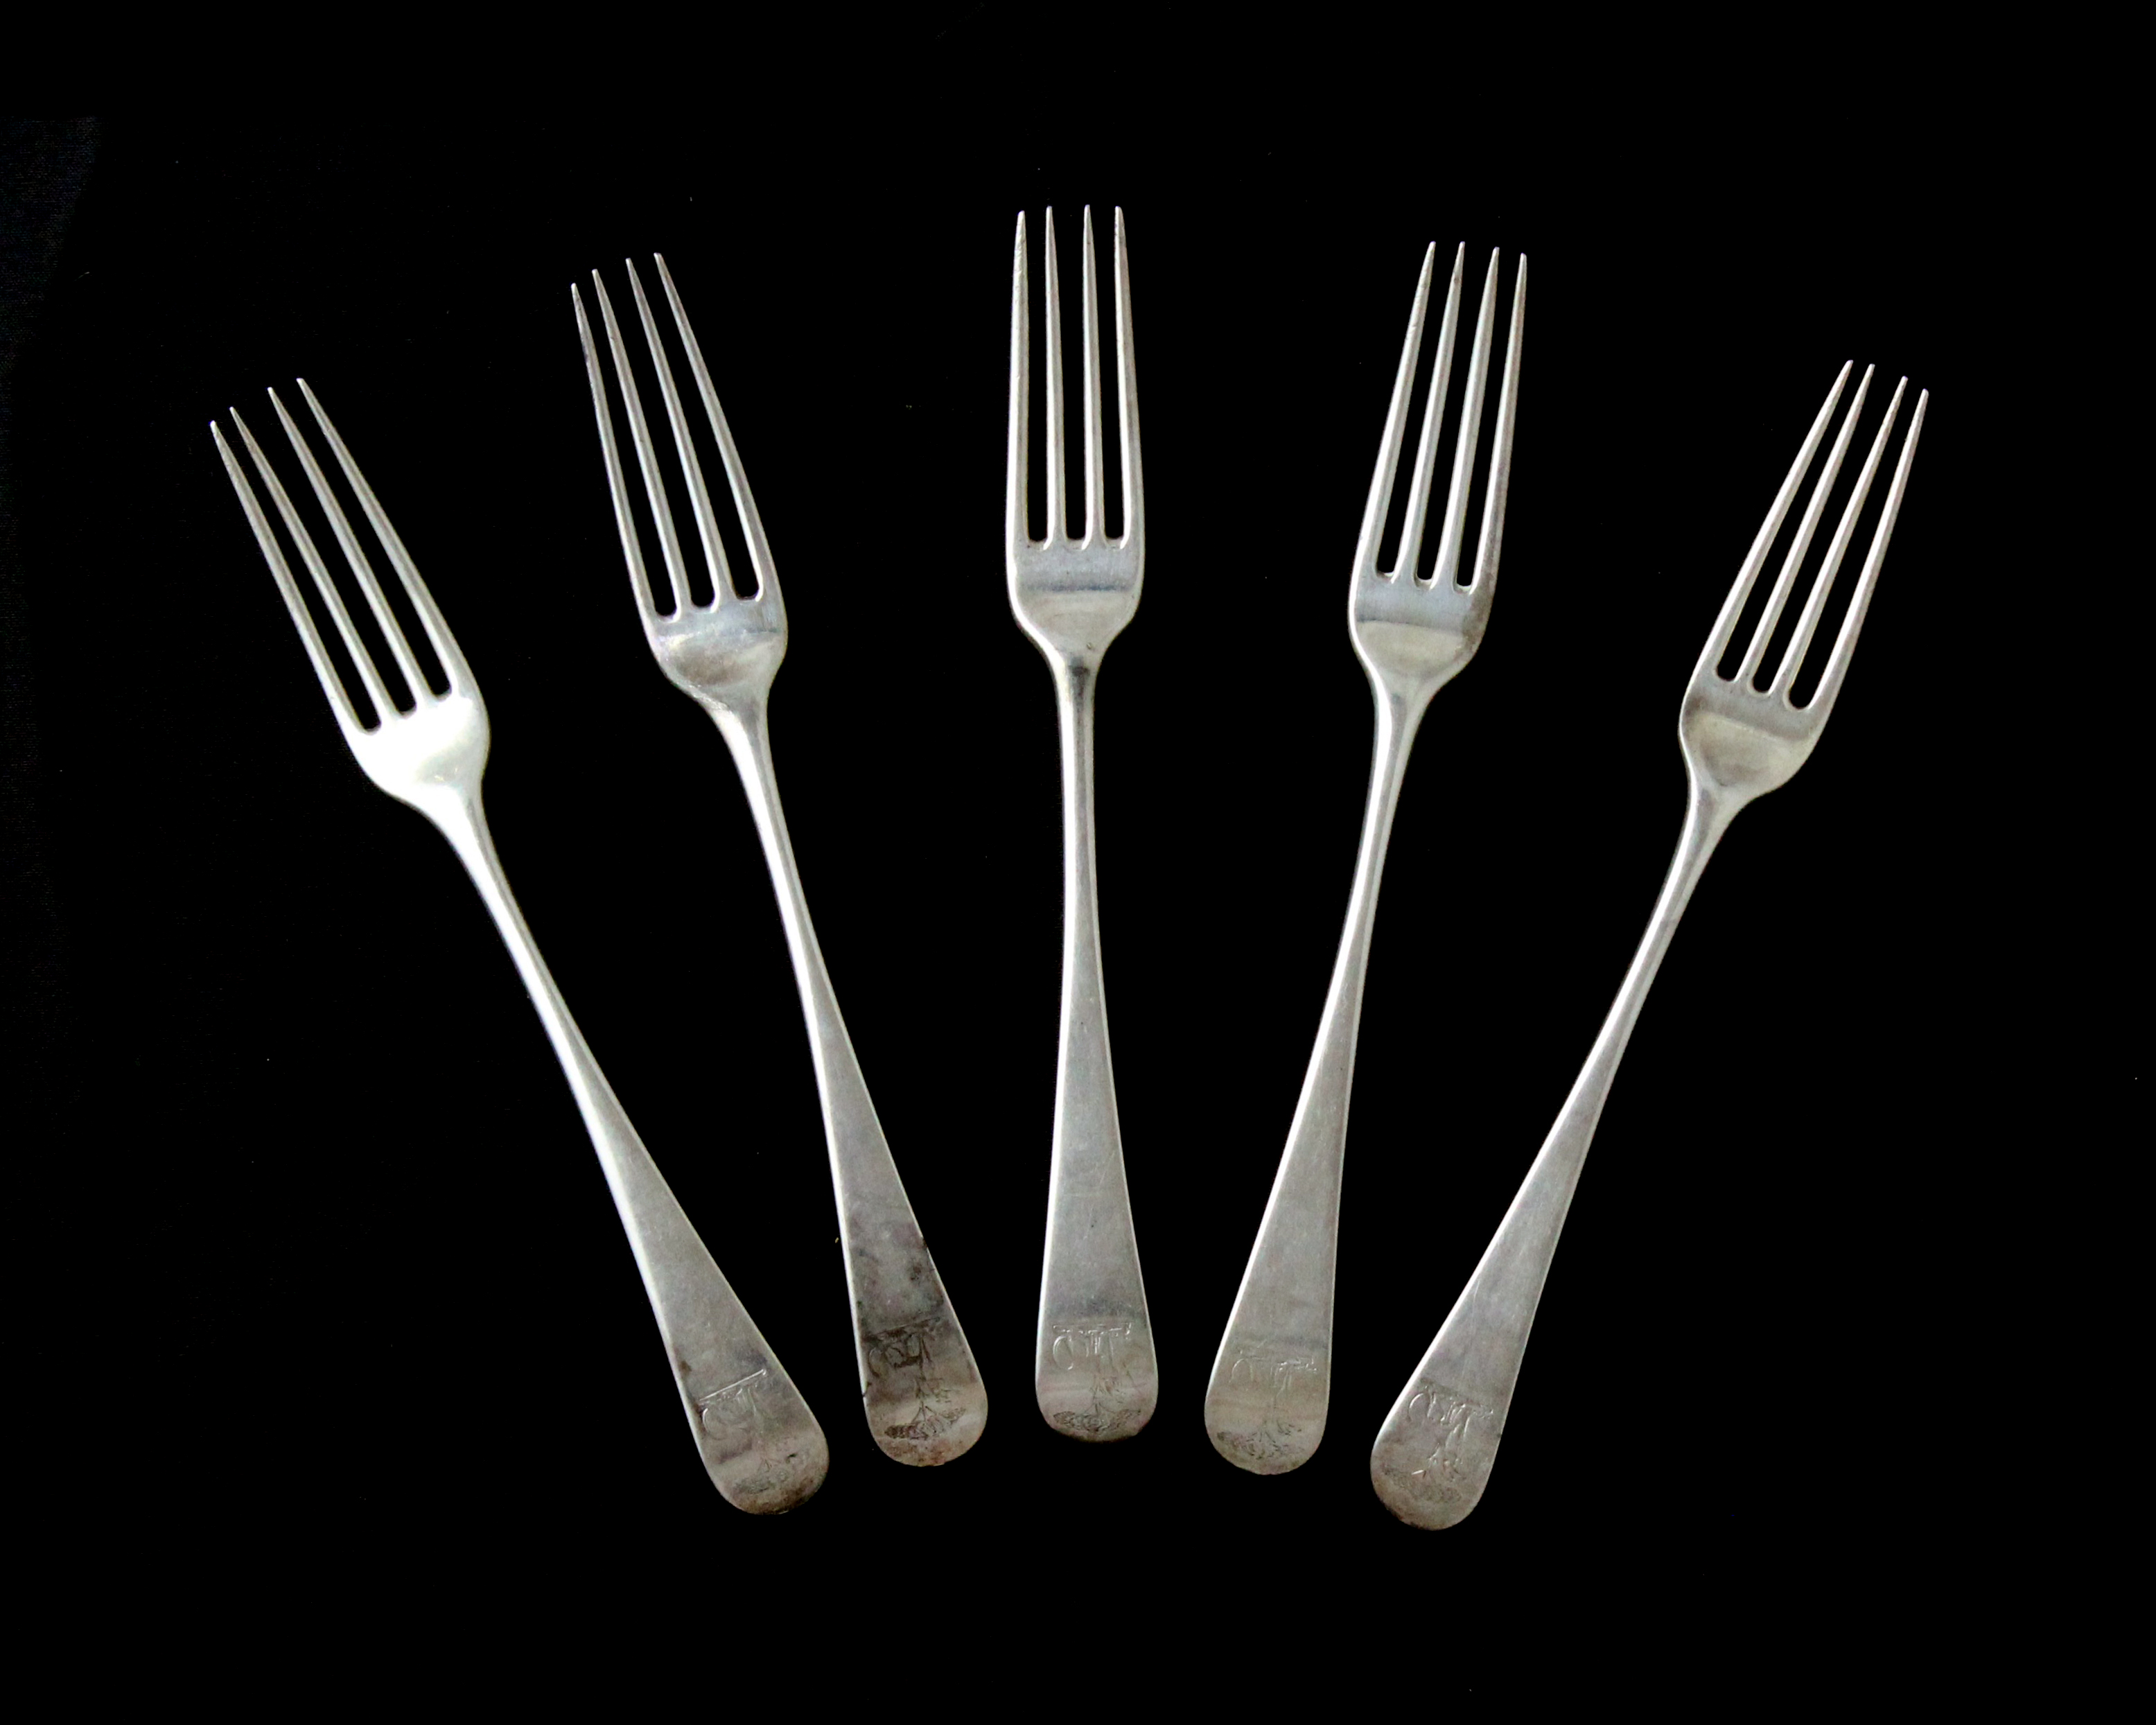 Los 6 - A set of five antique George III Sterling Silver dinner forks maker's mark indistinct, London 1773